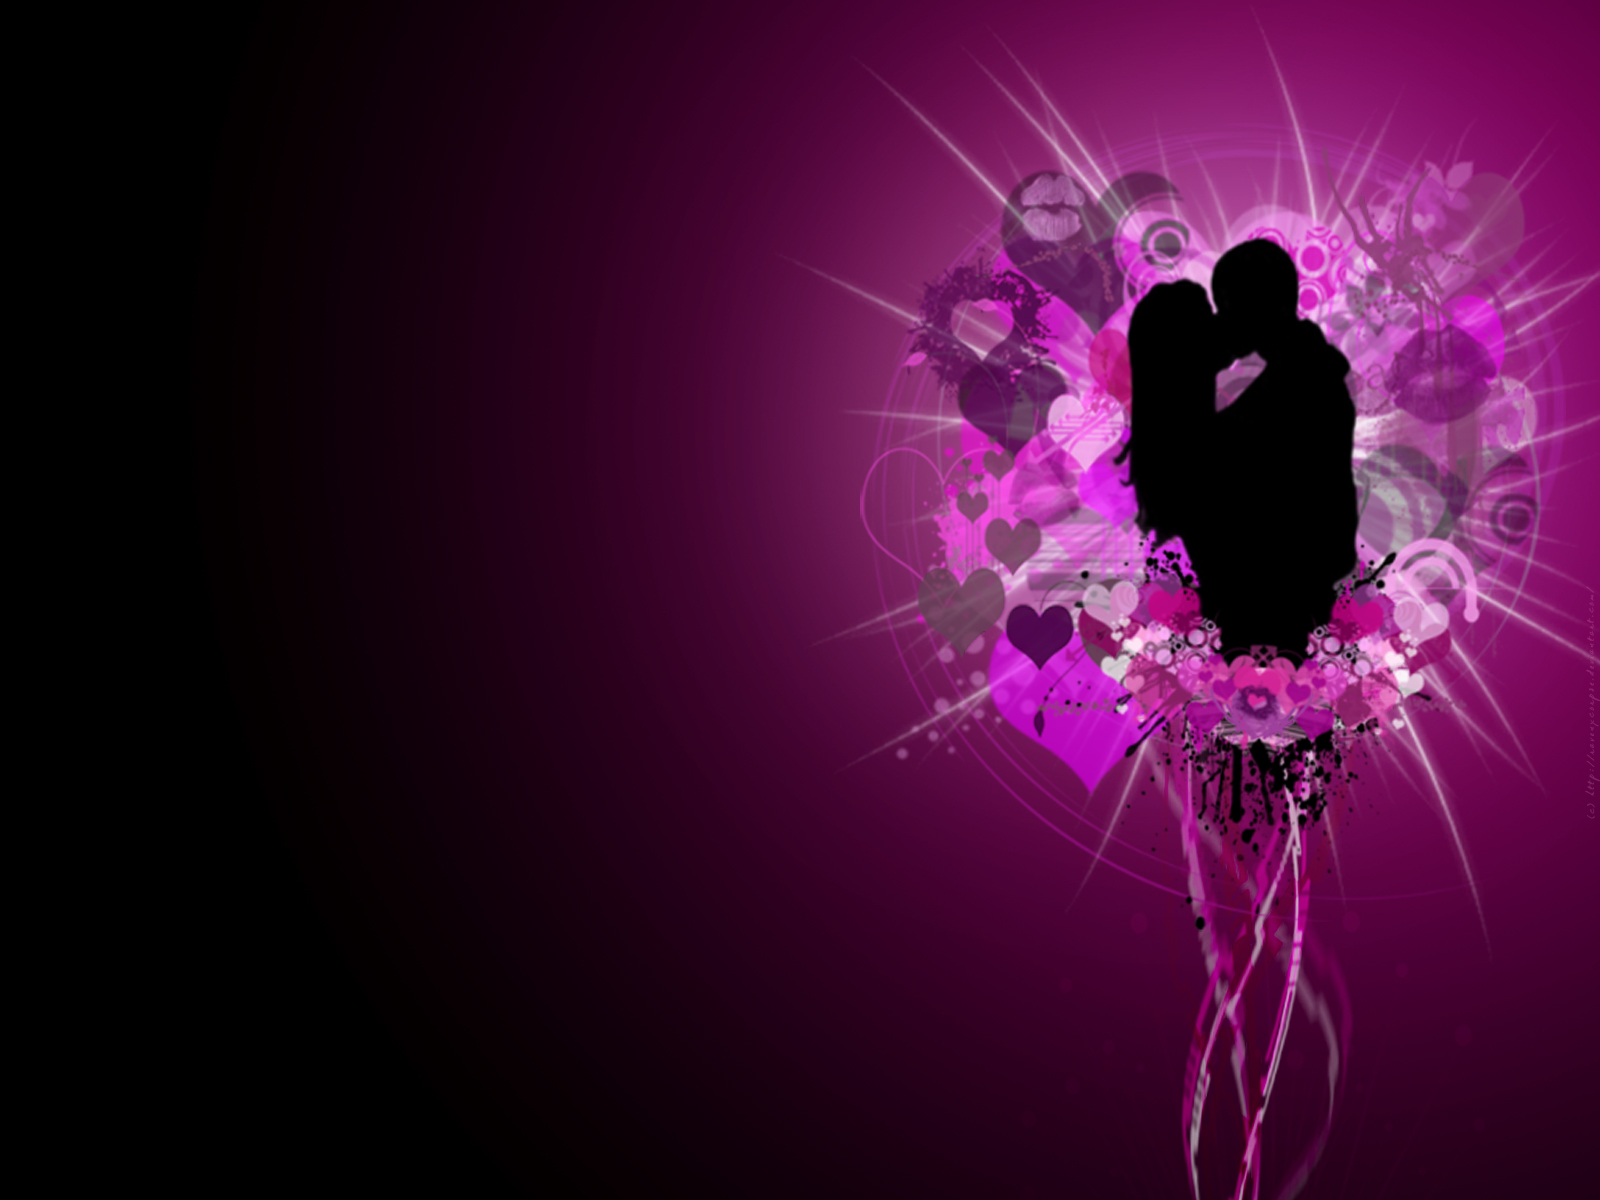 Wallpapers Backgrounds Valentine Wallpapers Love Backgrounds 1600x1200